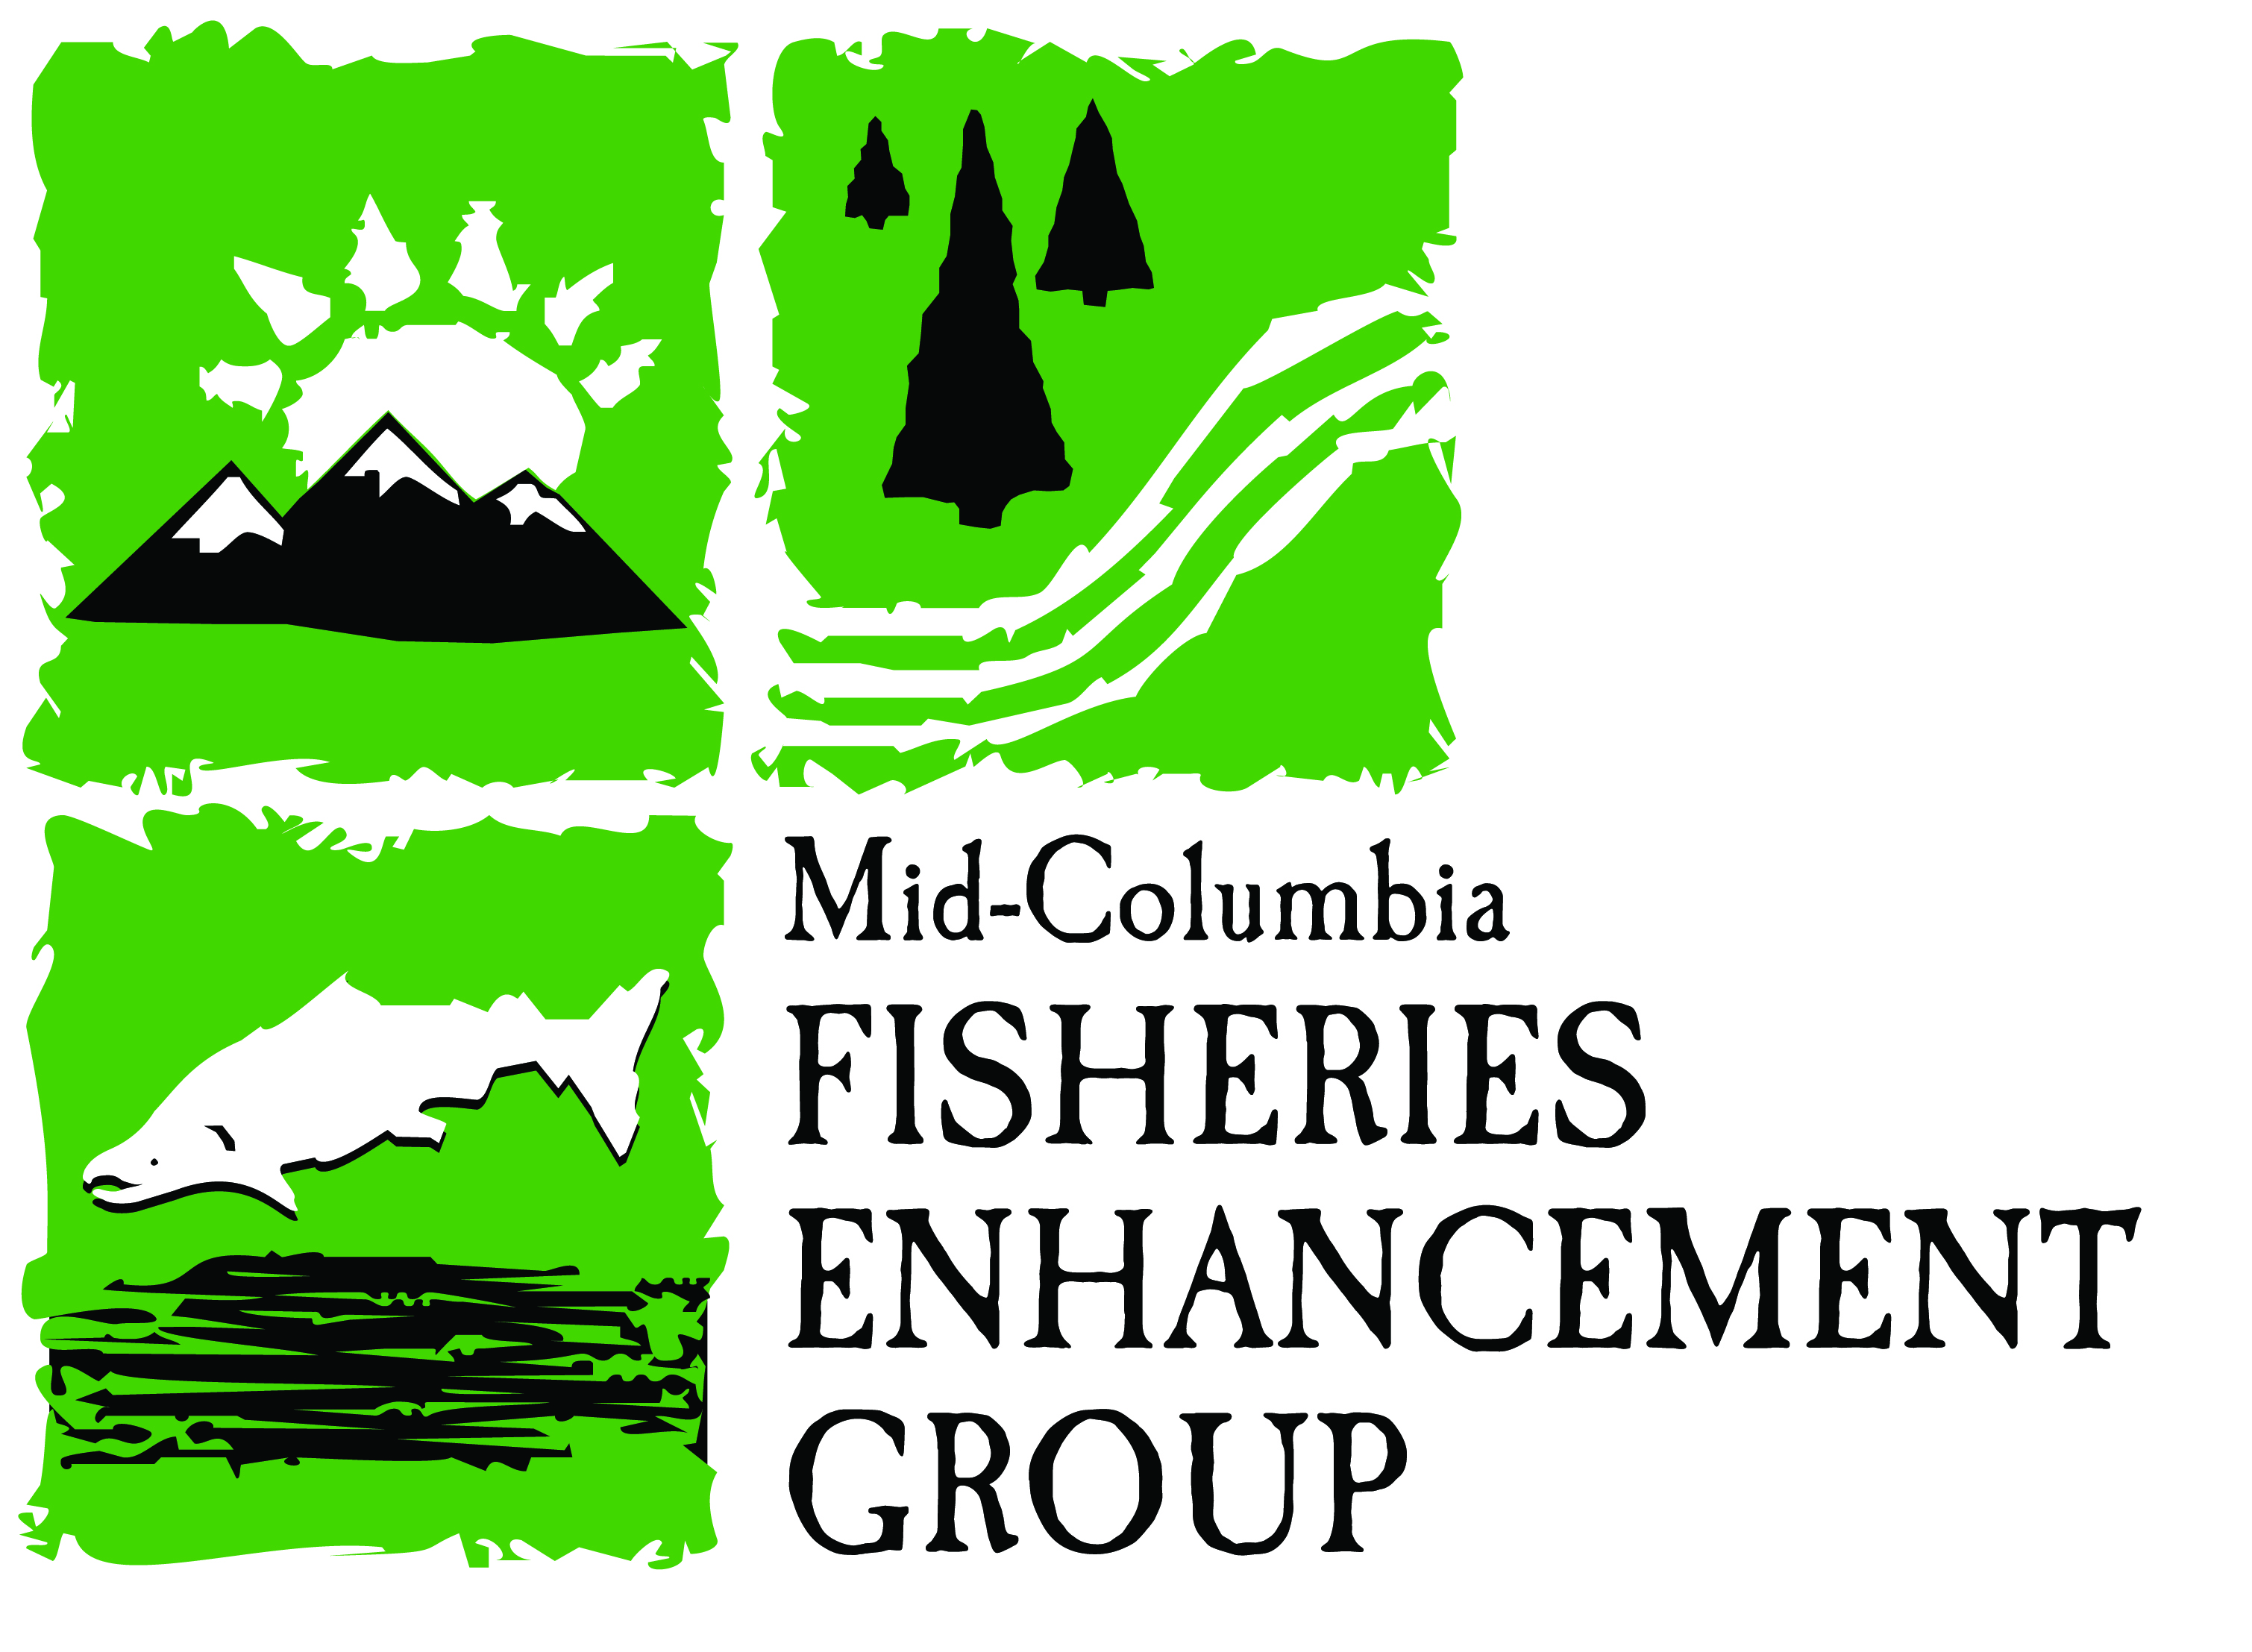 Mid-Columbia Fisheries Enhancement Group